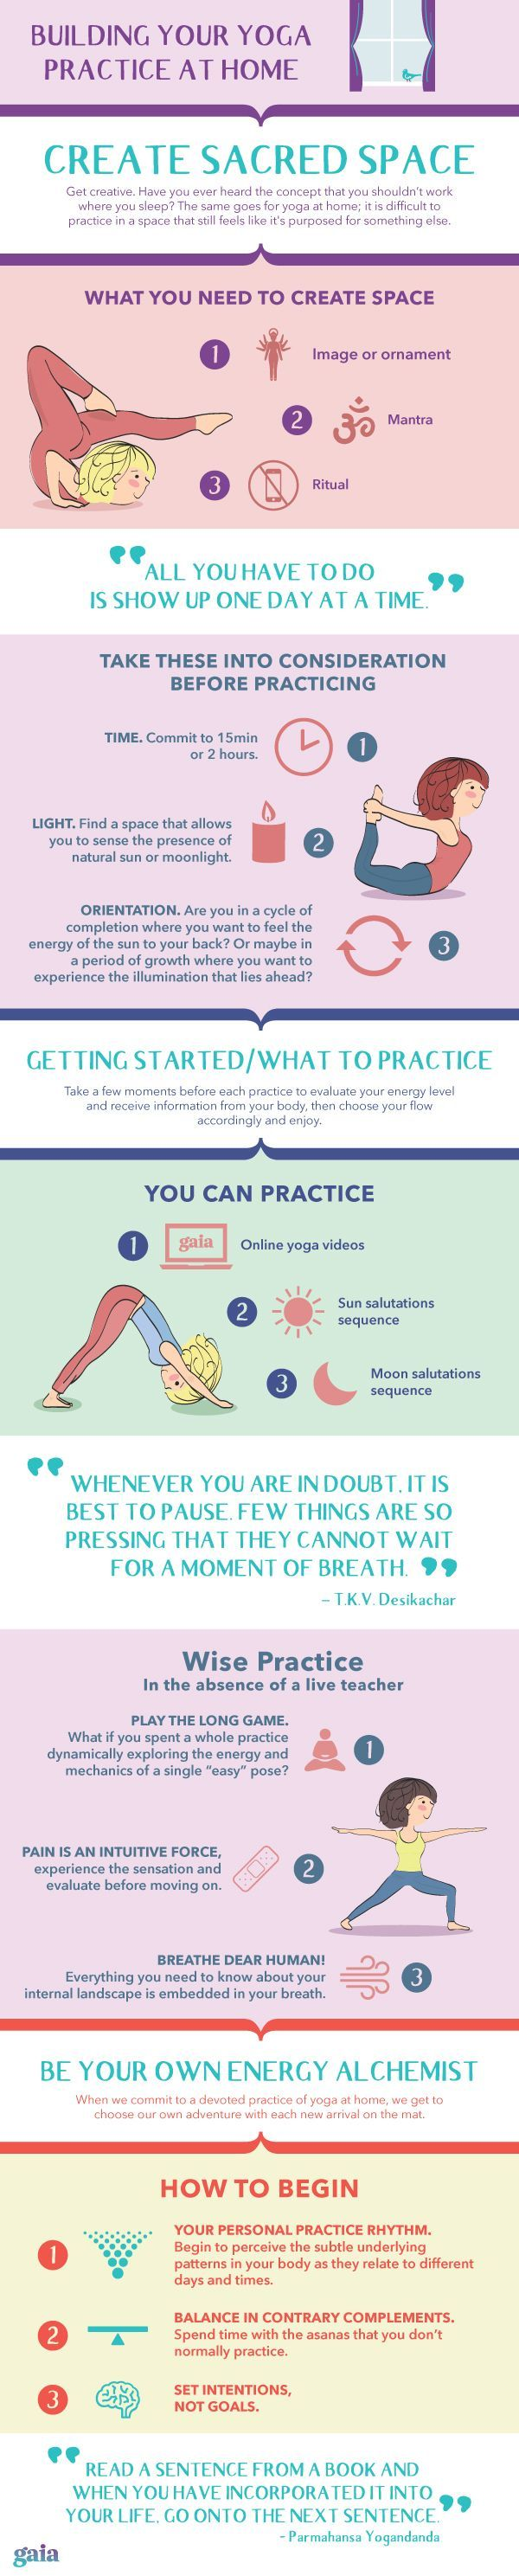 How to get started with a yoga practice at home.